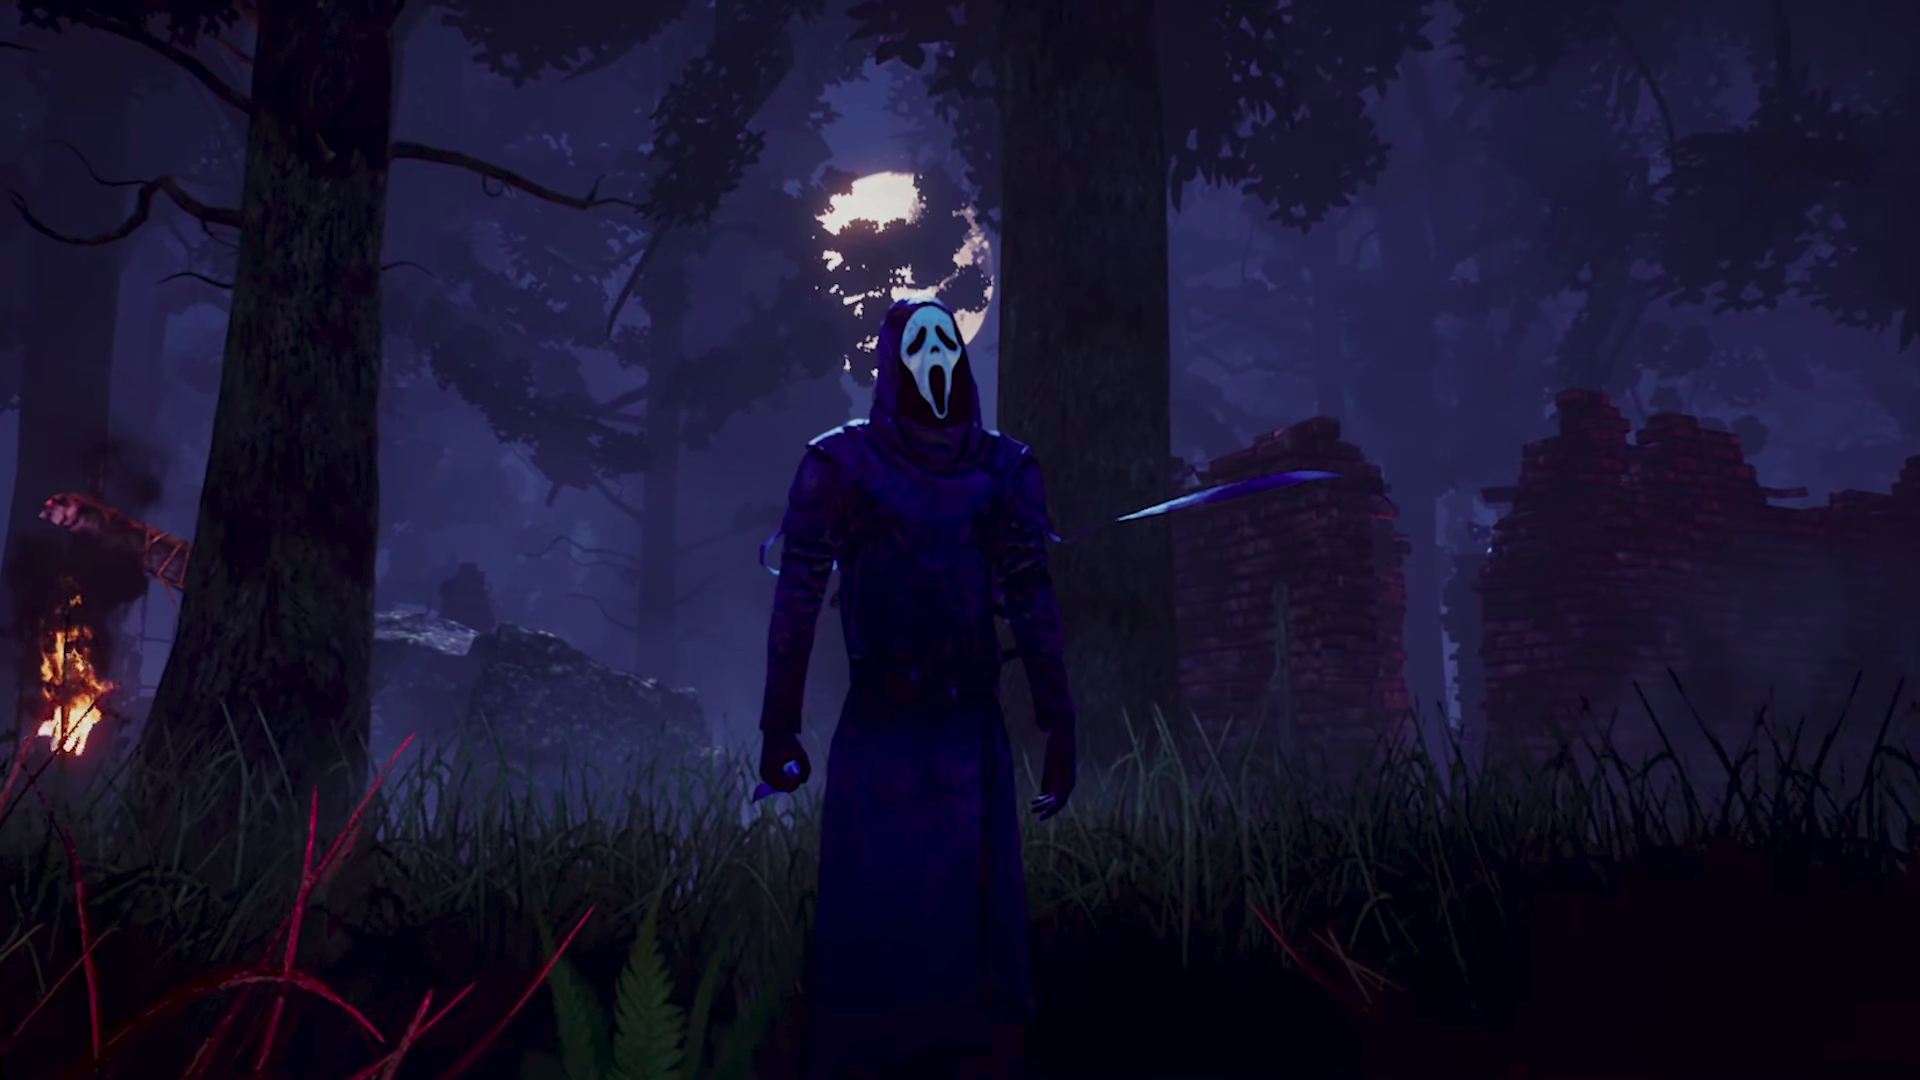 Dead By Daylight Update Adds New Killer, Full Patch Notes